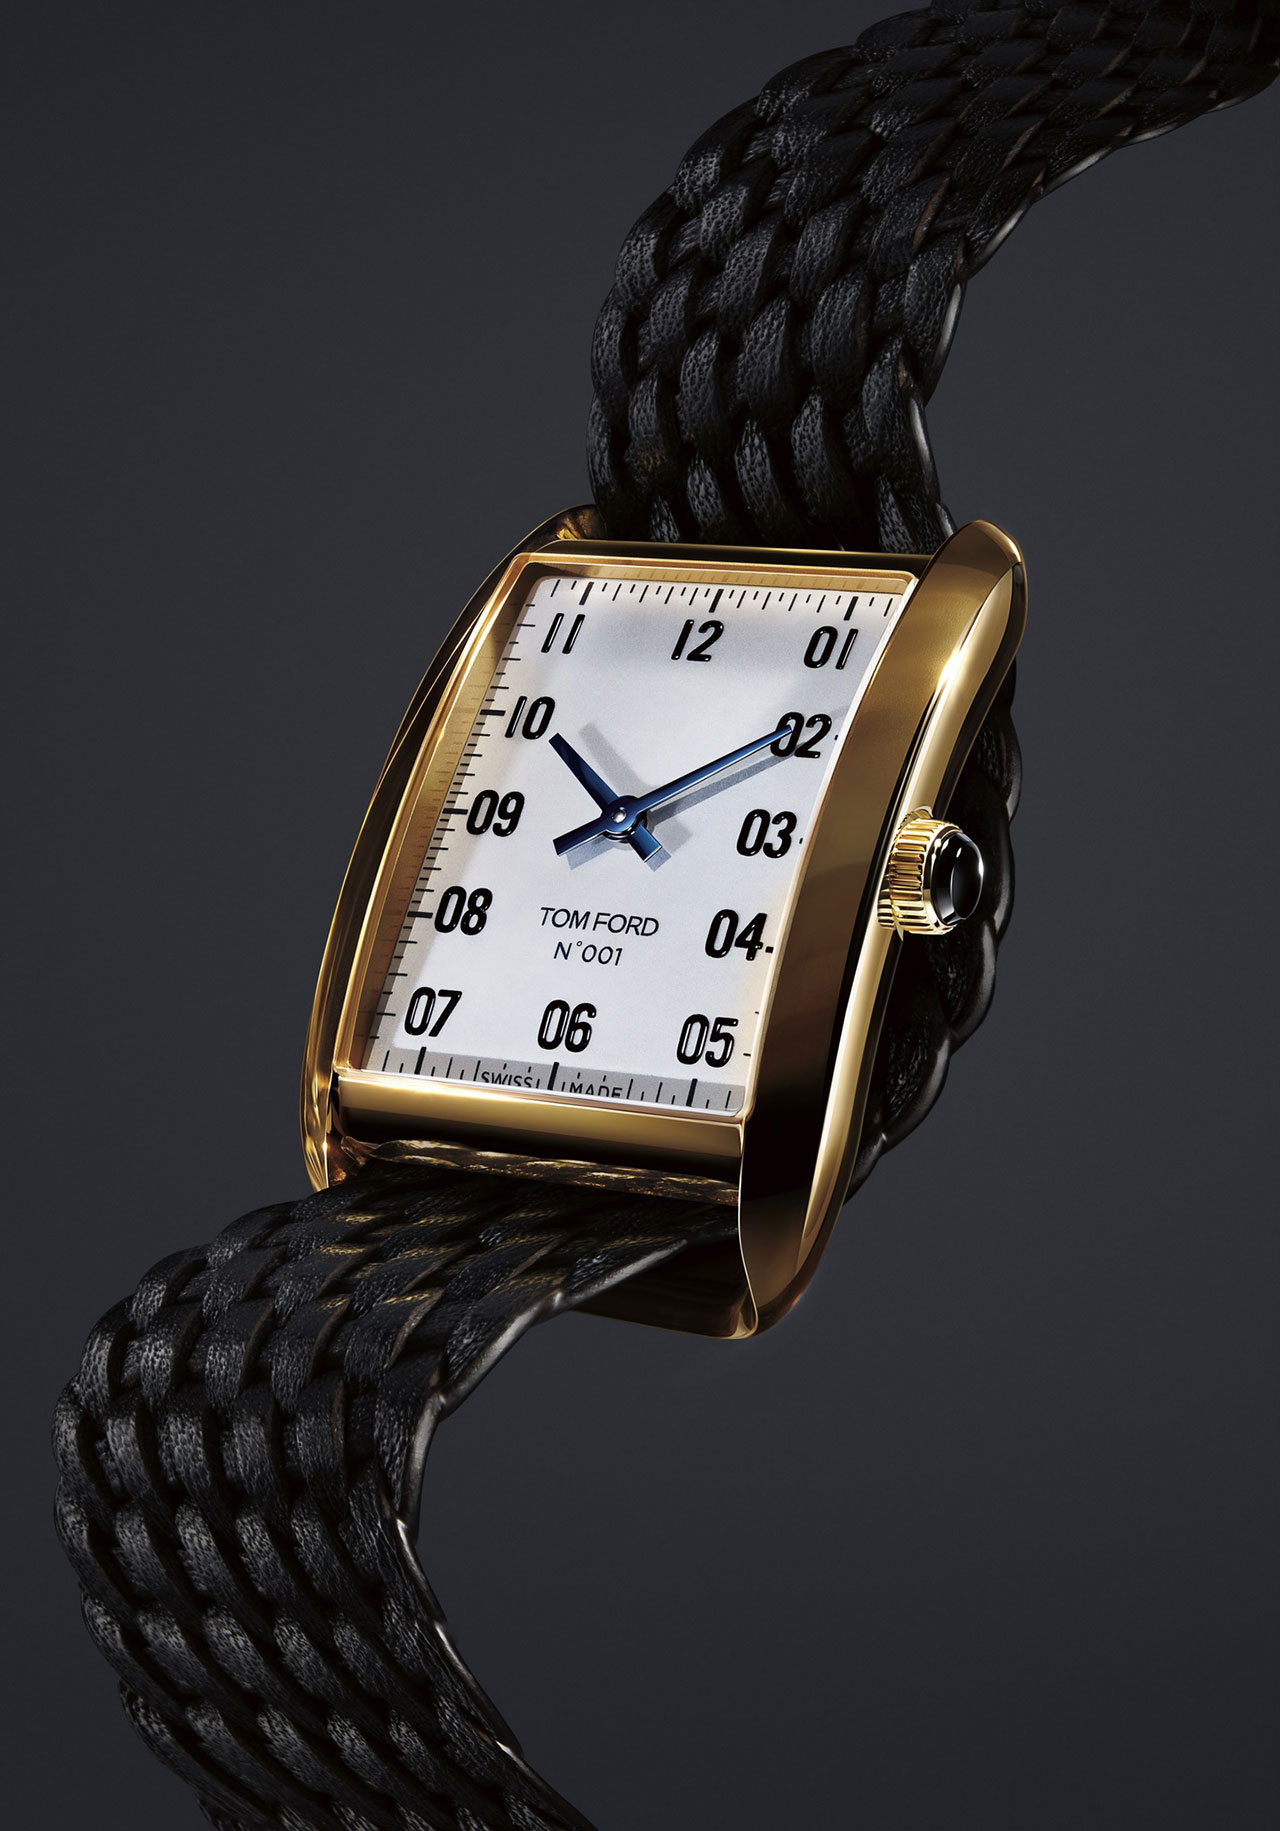 TOM FORD TIMEPIECE N° 001 | © TOM FORD